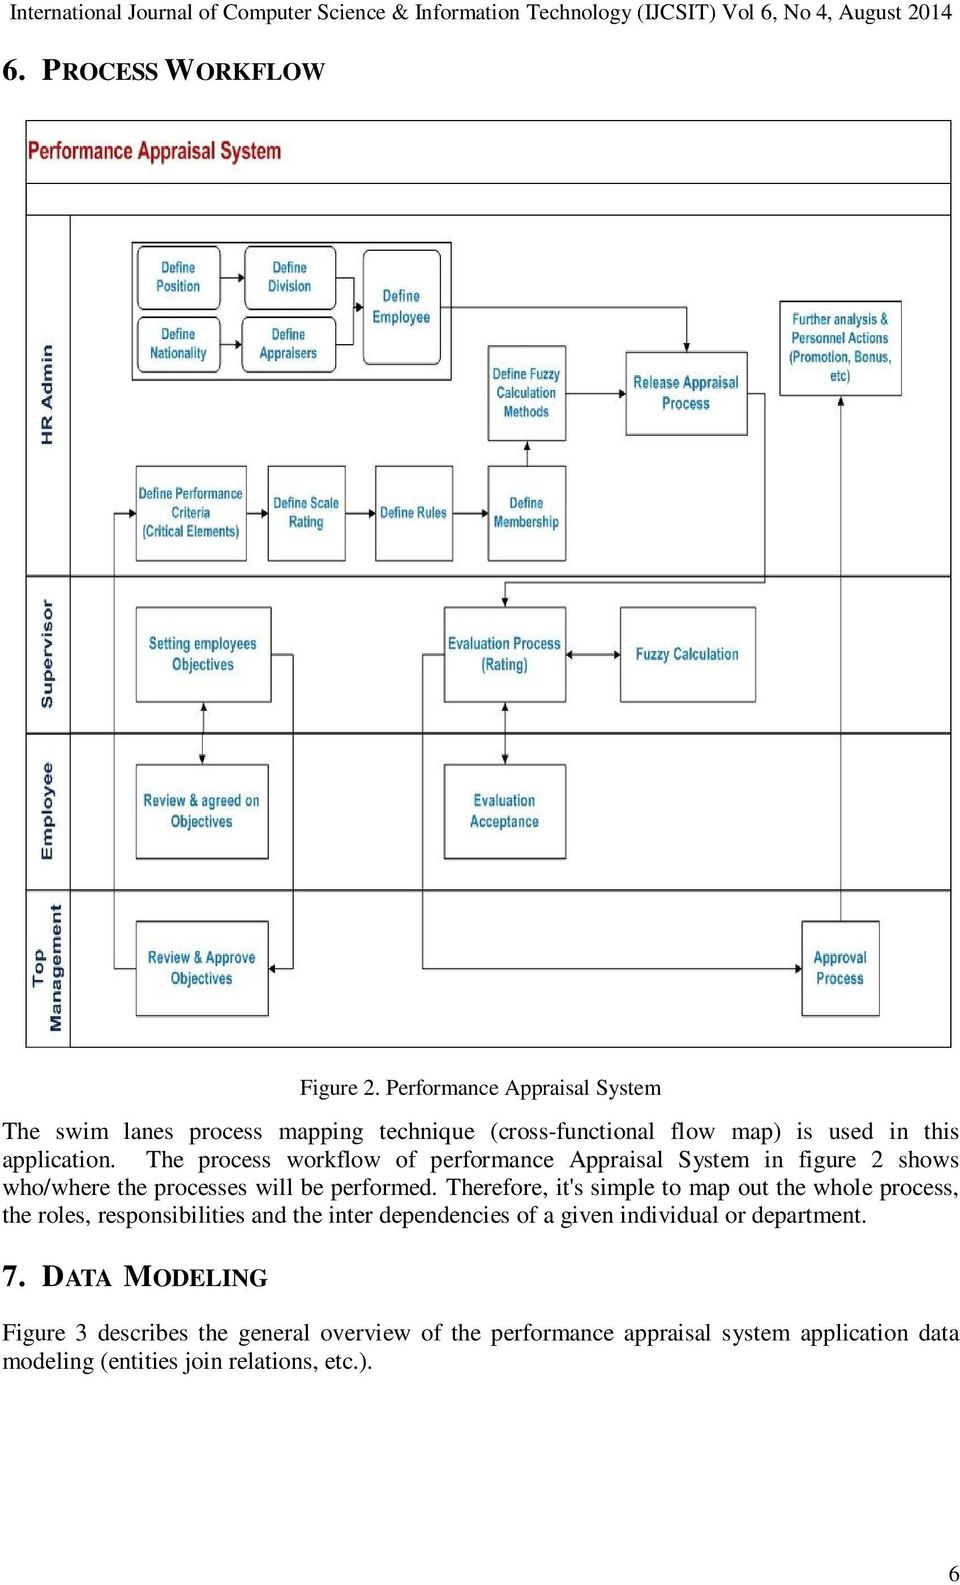 The process workflow of performance Appraisal System in figure 2 shows who/where the processes will be performed.